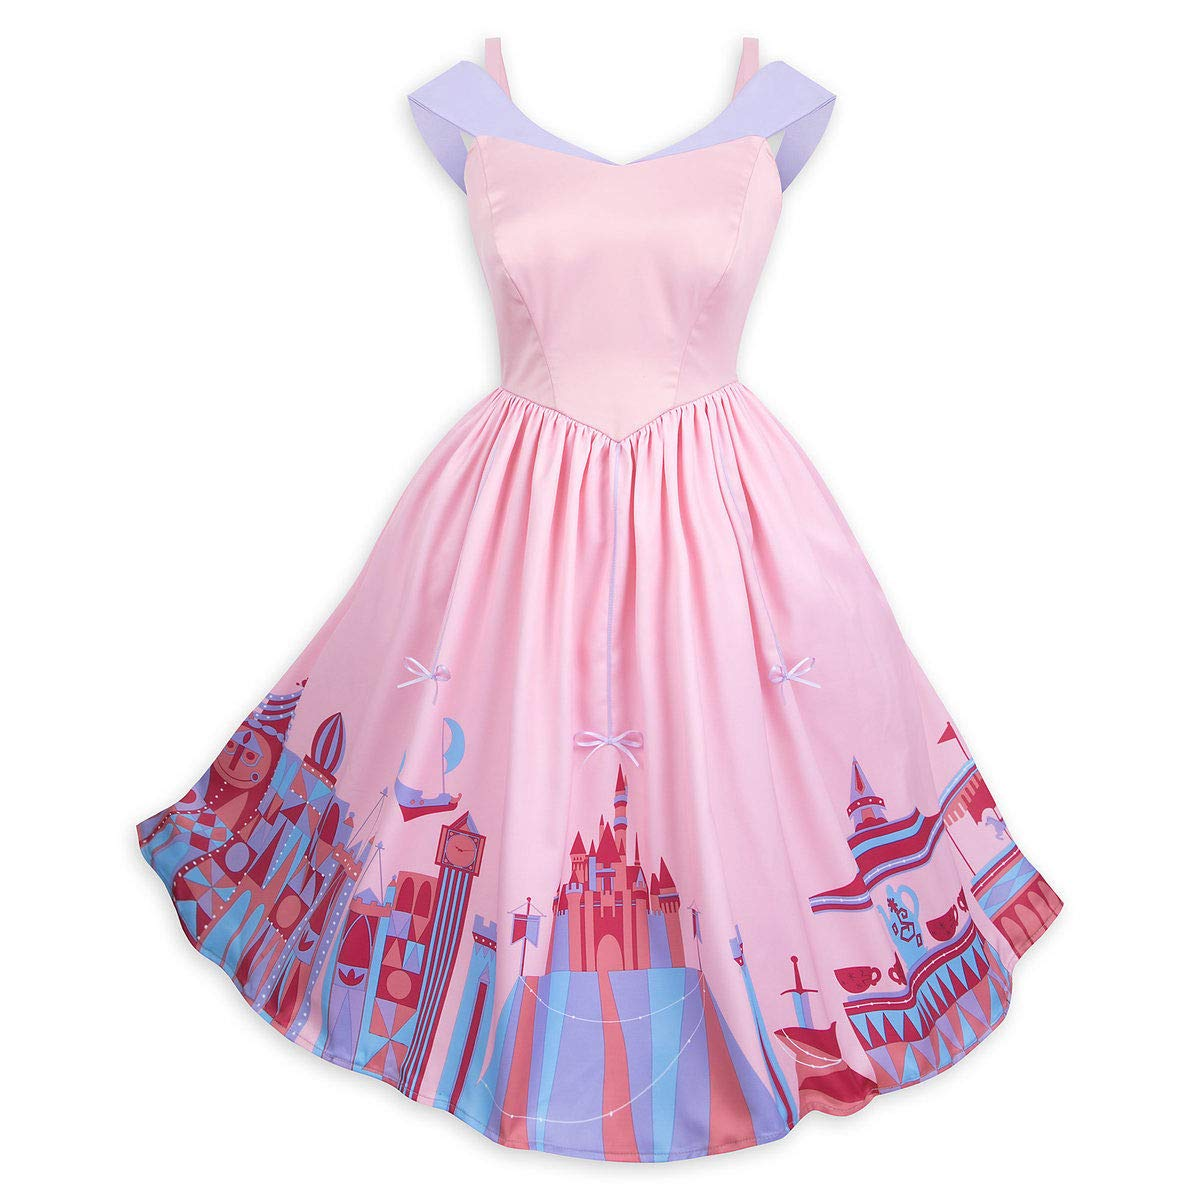 DisneyParks Fantasyland Dress for Women by Her Universe Pink